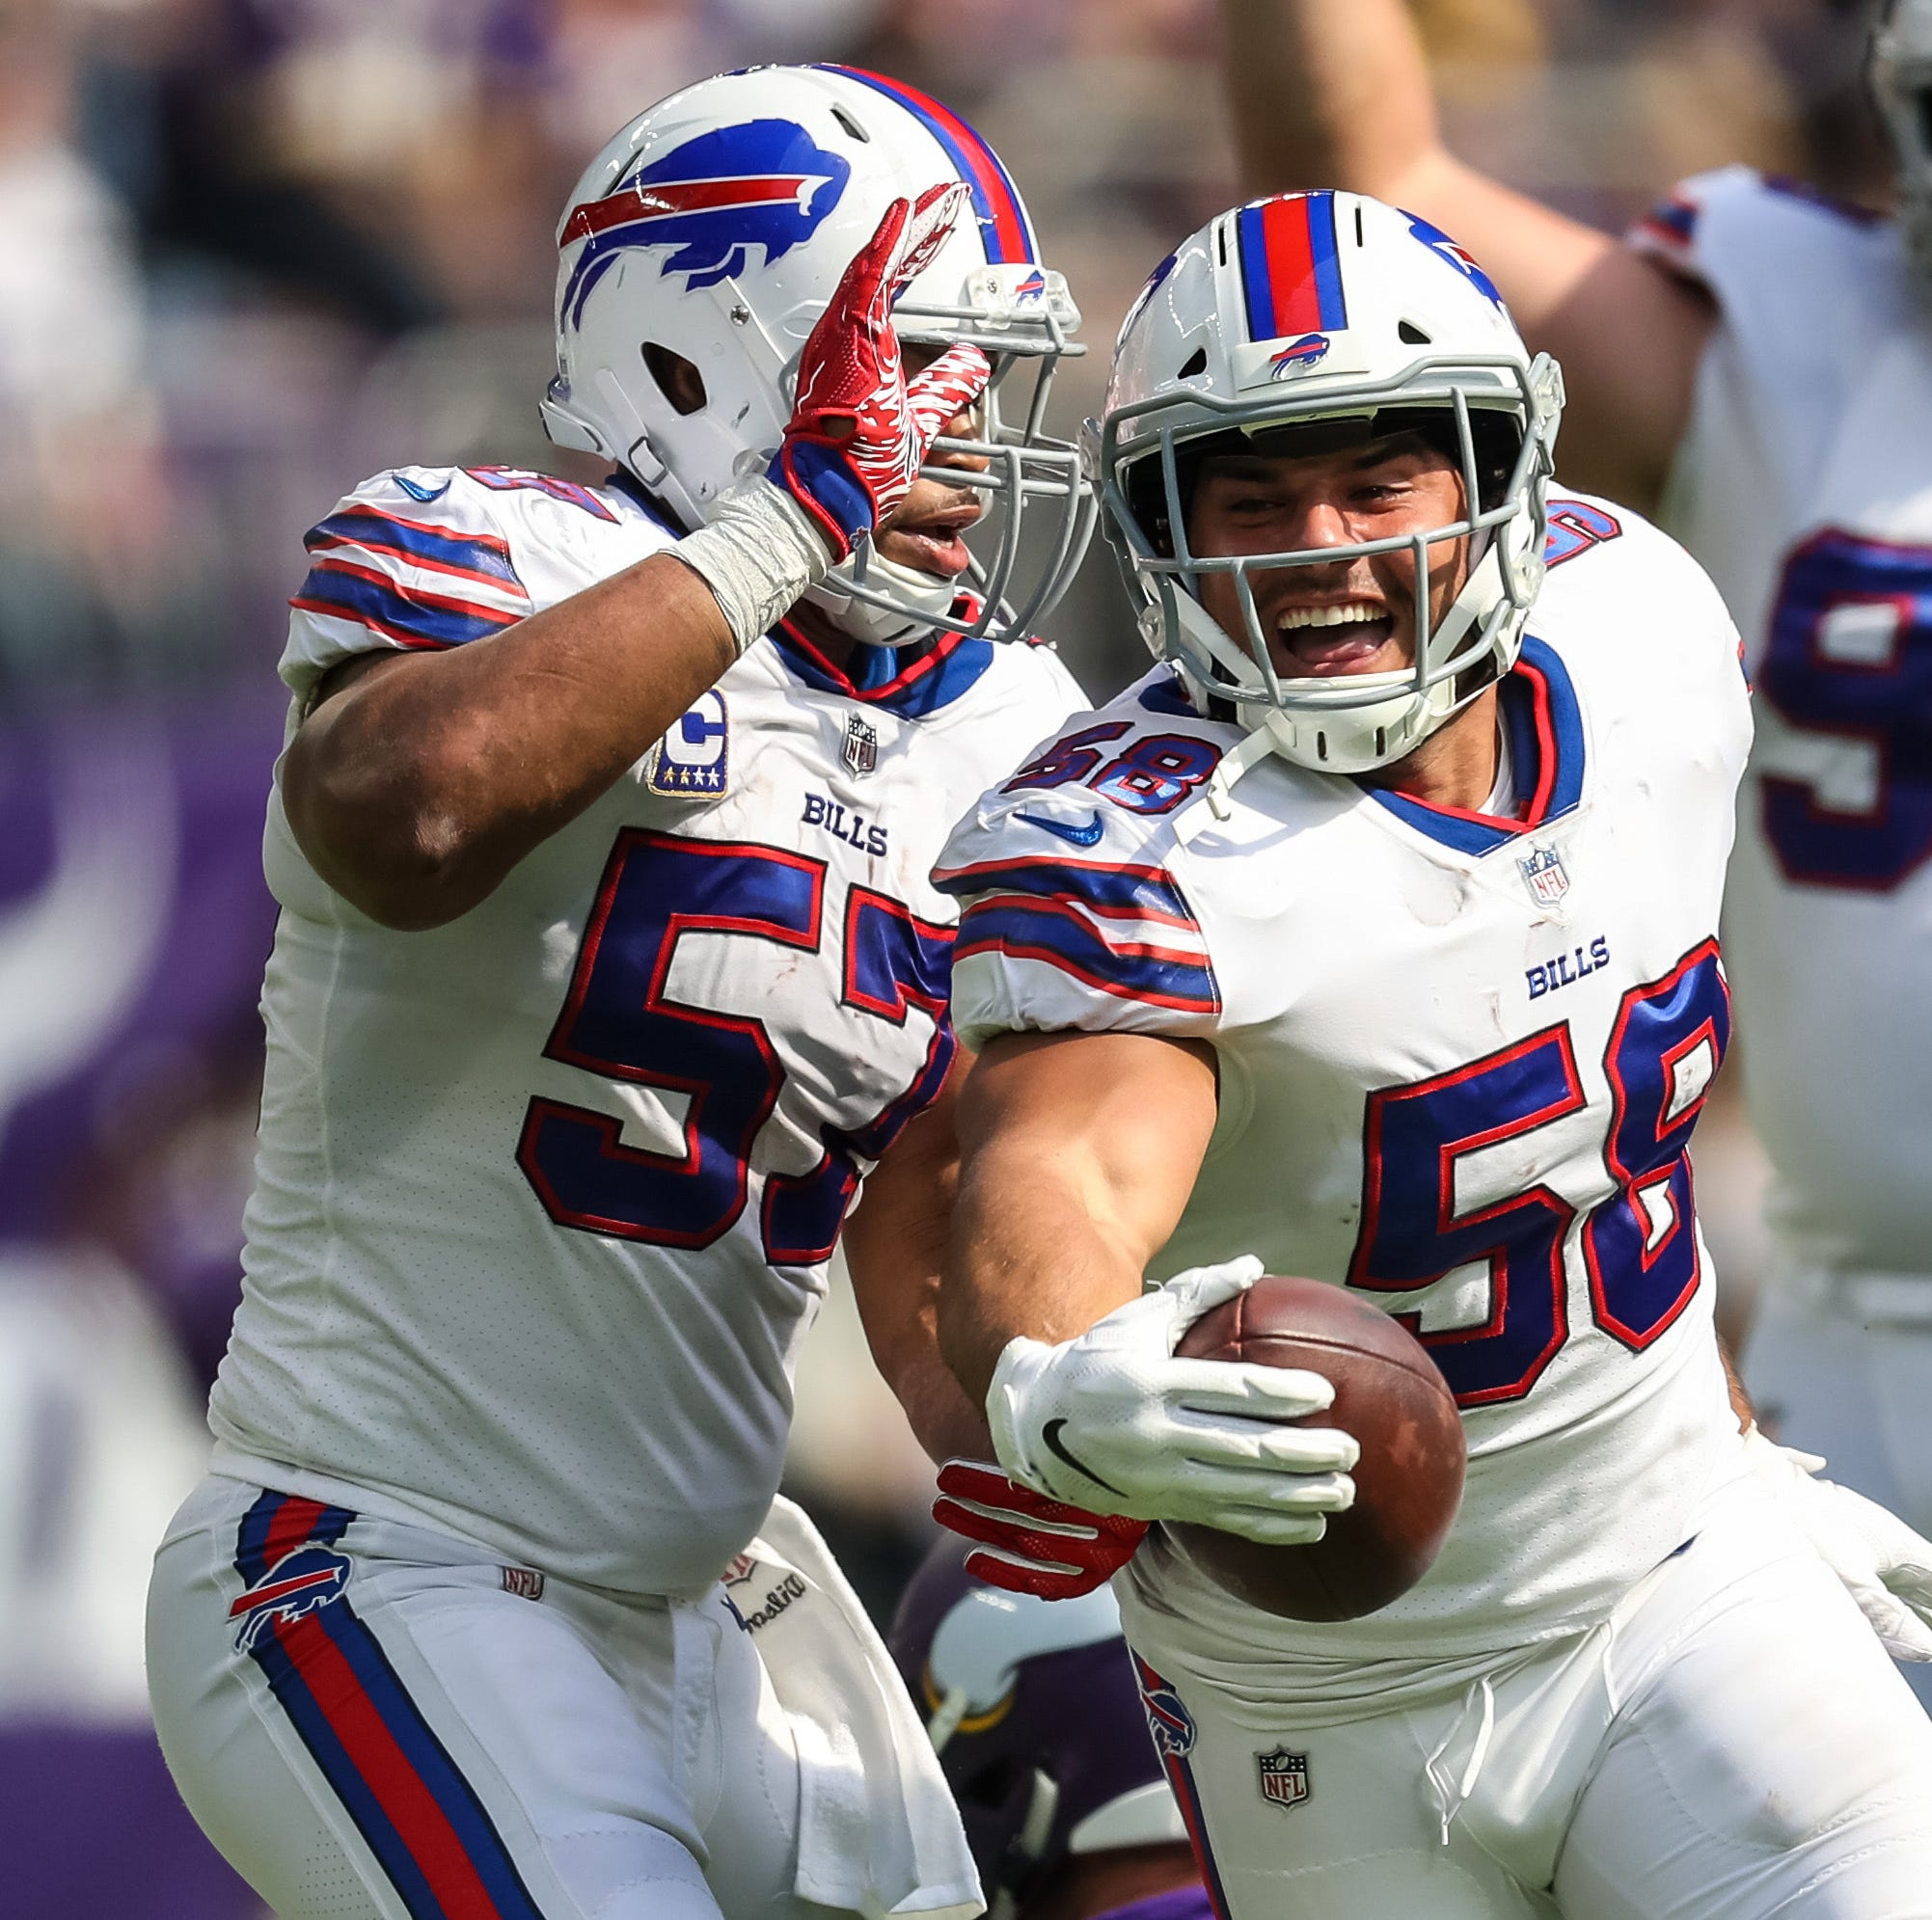 Bills pull off a shocker with hurdling rookie QB, dynamic defense in Minnesota